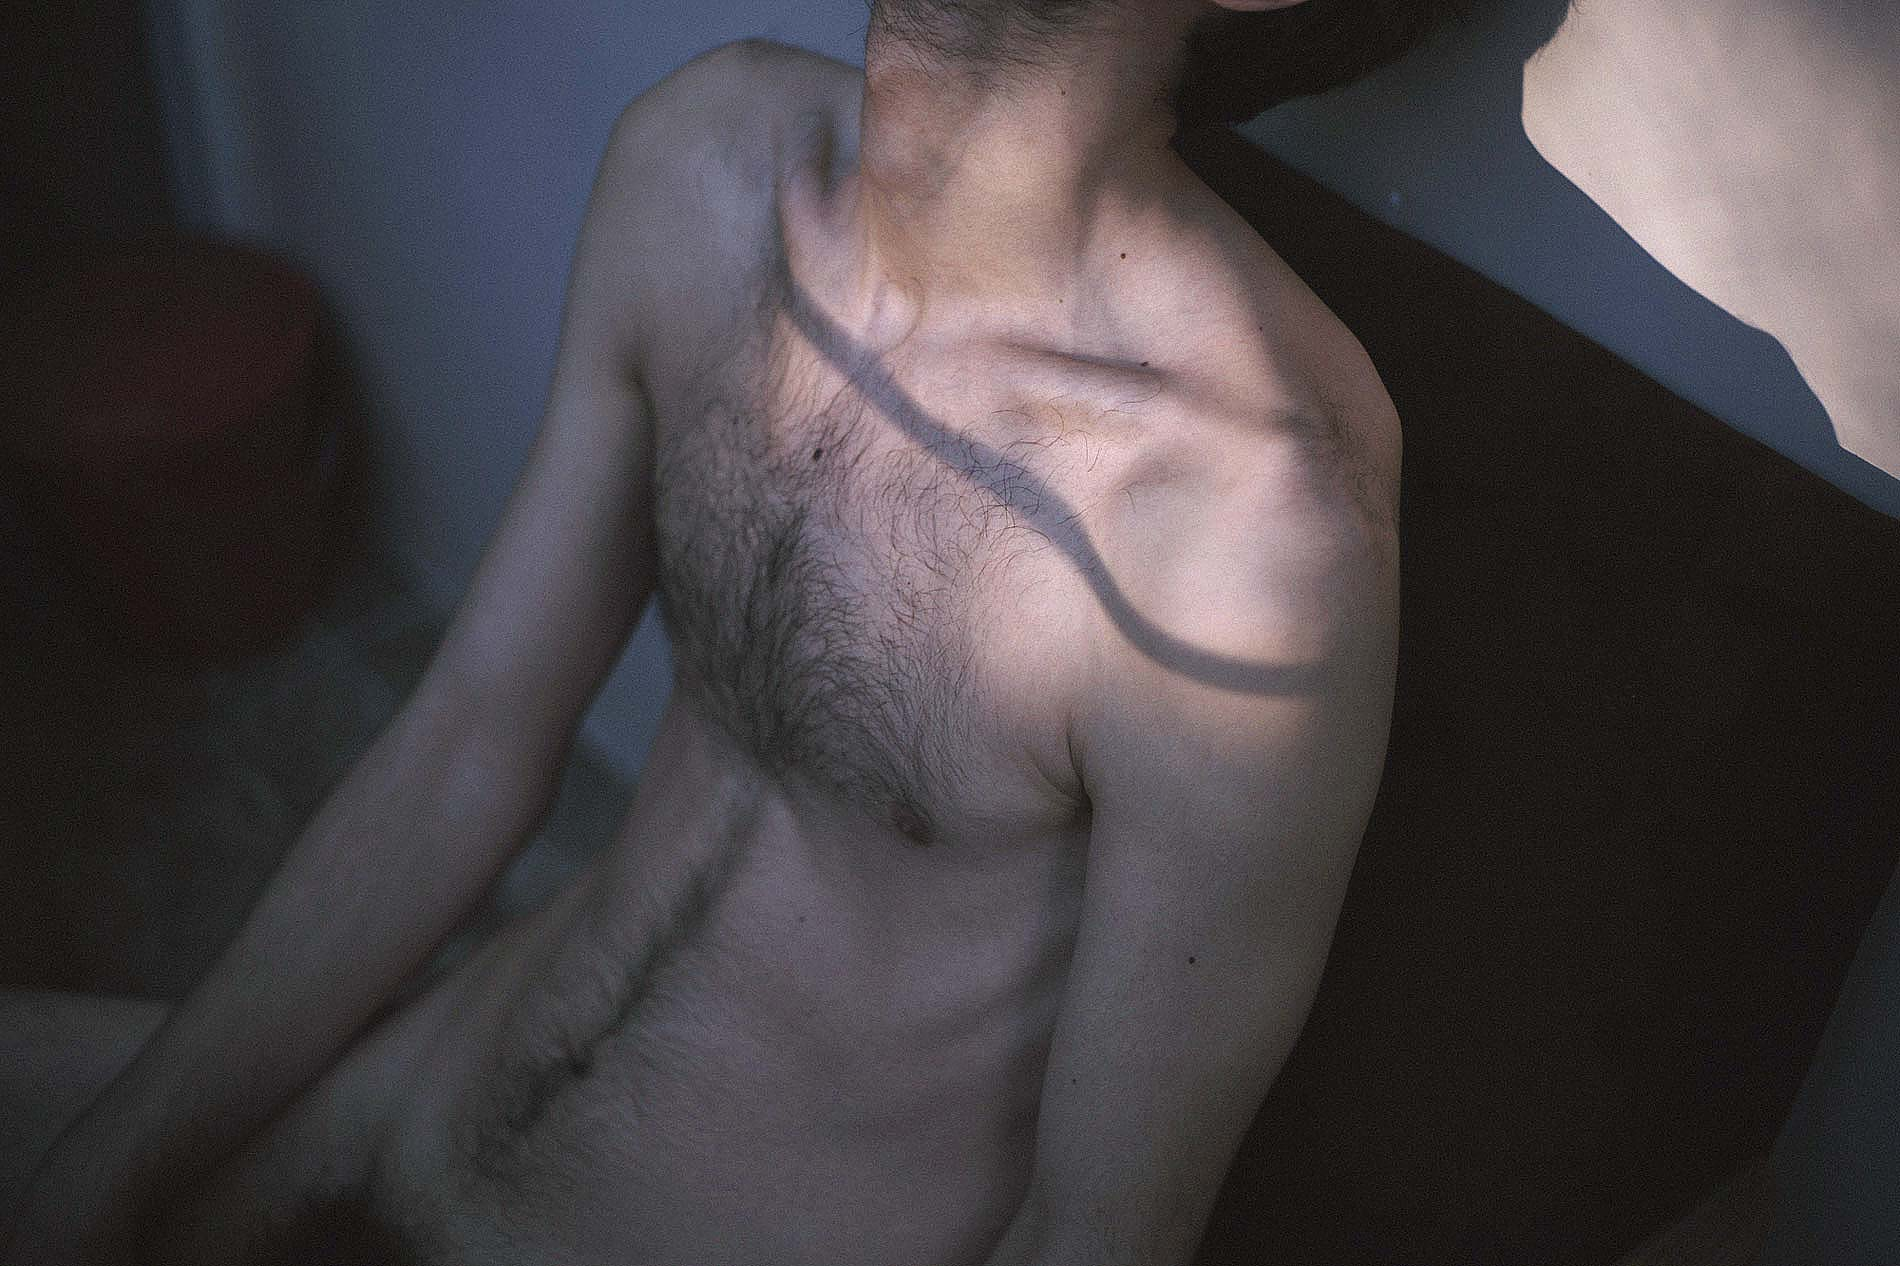 Defiant bodies: Meet the photographer behind these tender portraits of Tbilisi's queer community